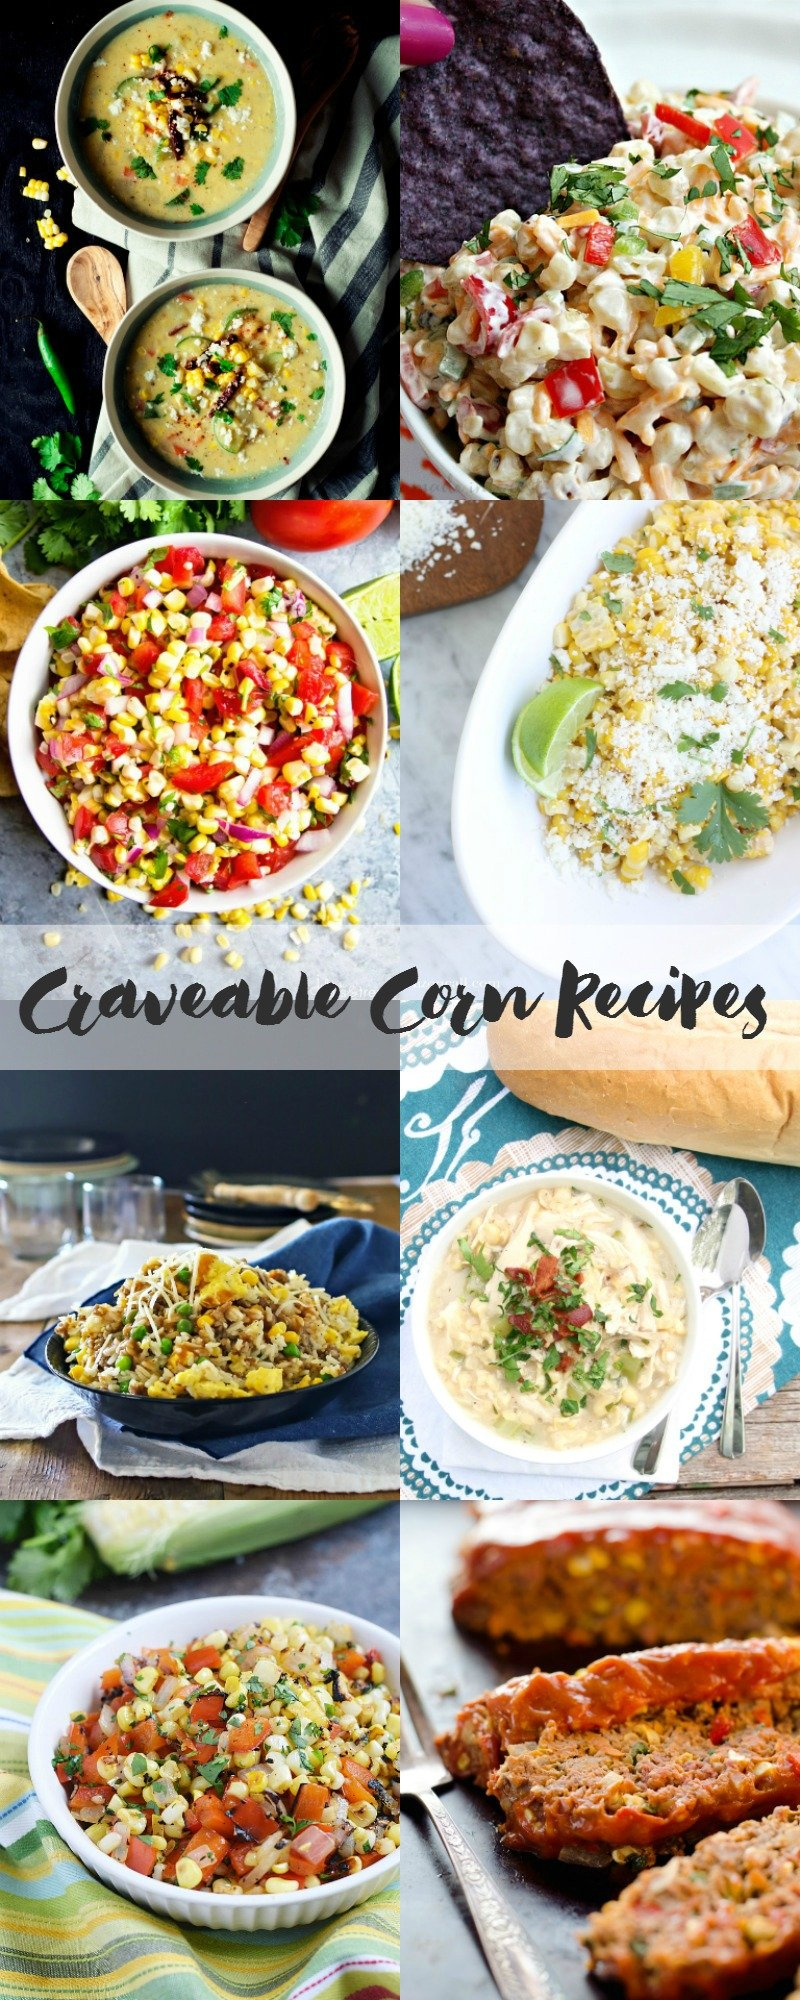 Craveable corn recipes that every corn fan will love.